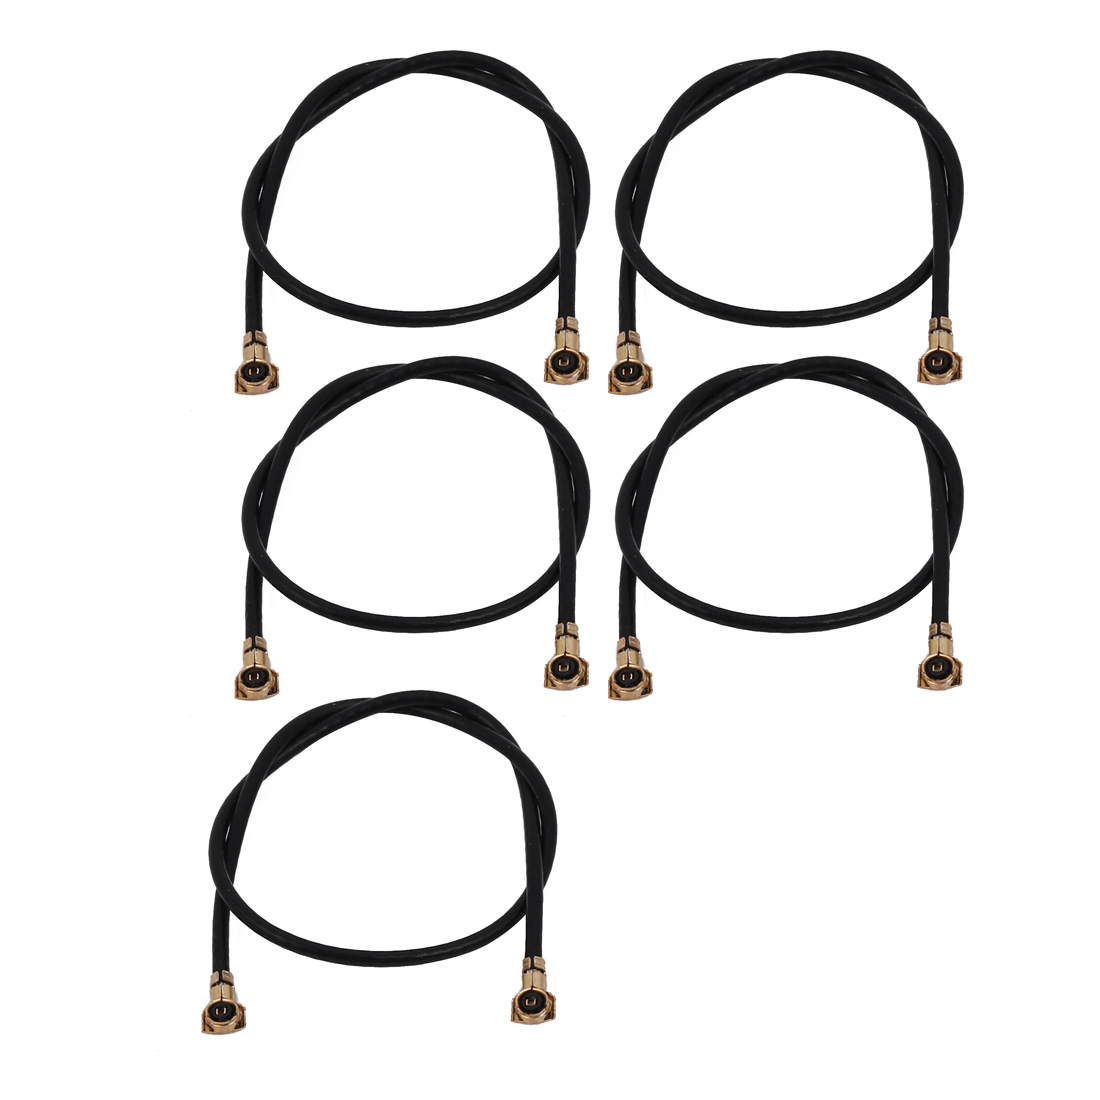 5Pcs Pigtail Antenna Cable IPEX to IPEX Connector Extension Cable 10cm Long